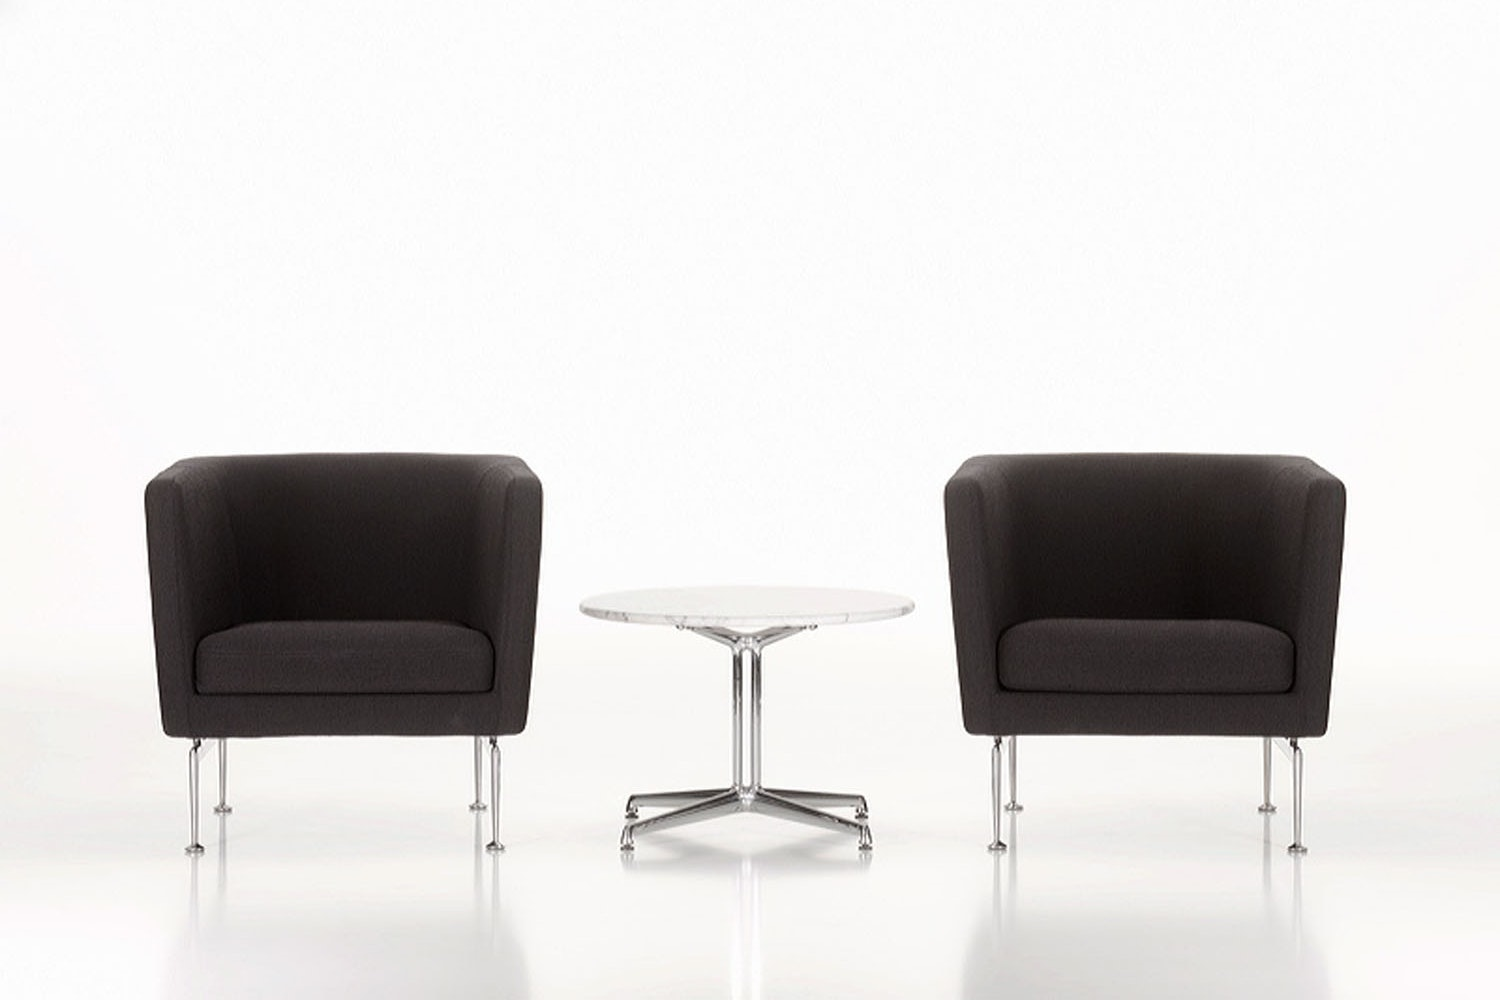 Suita Club Armchair by Antonio Citterio for Vitra